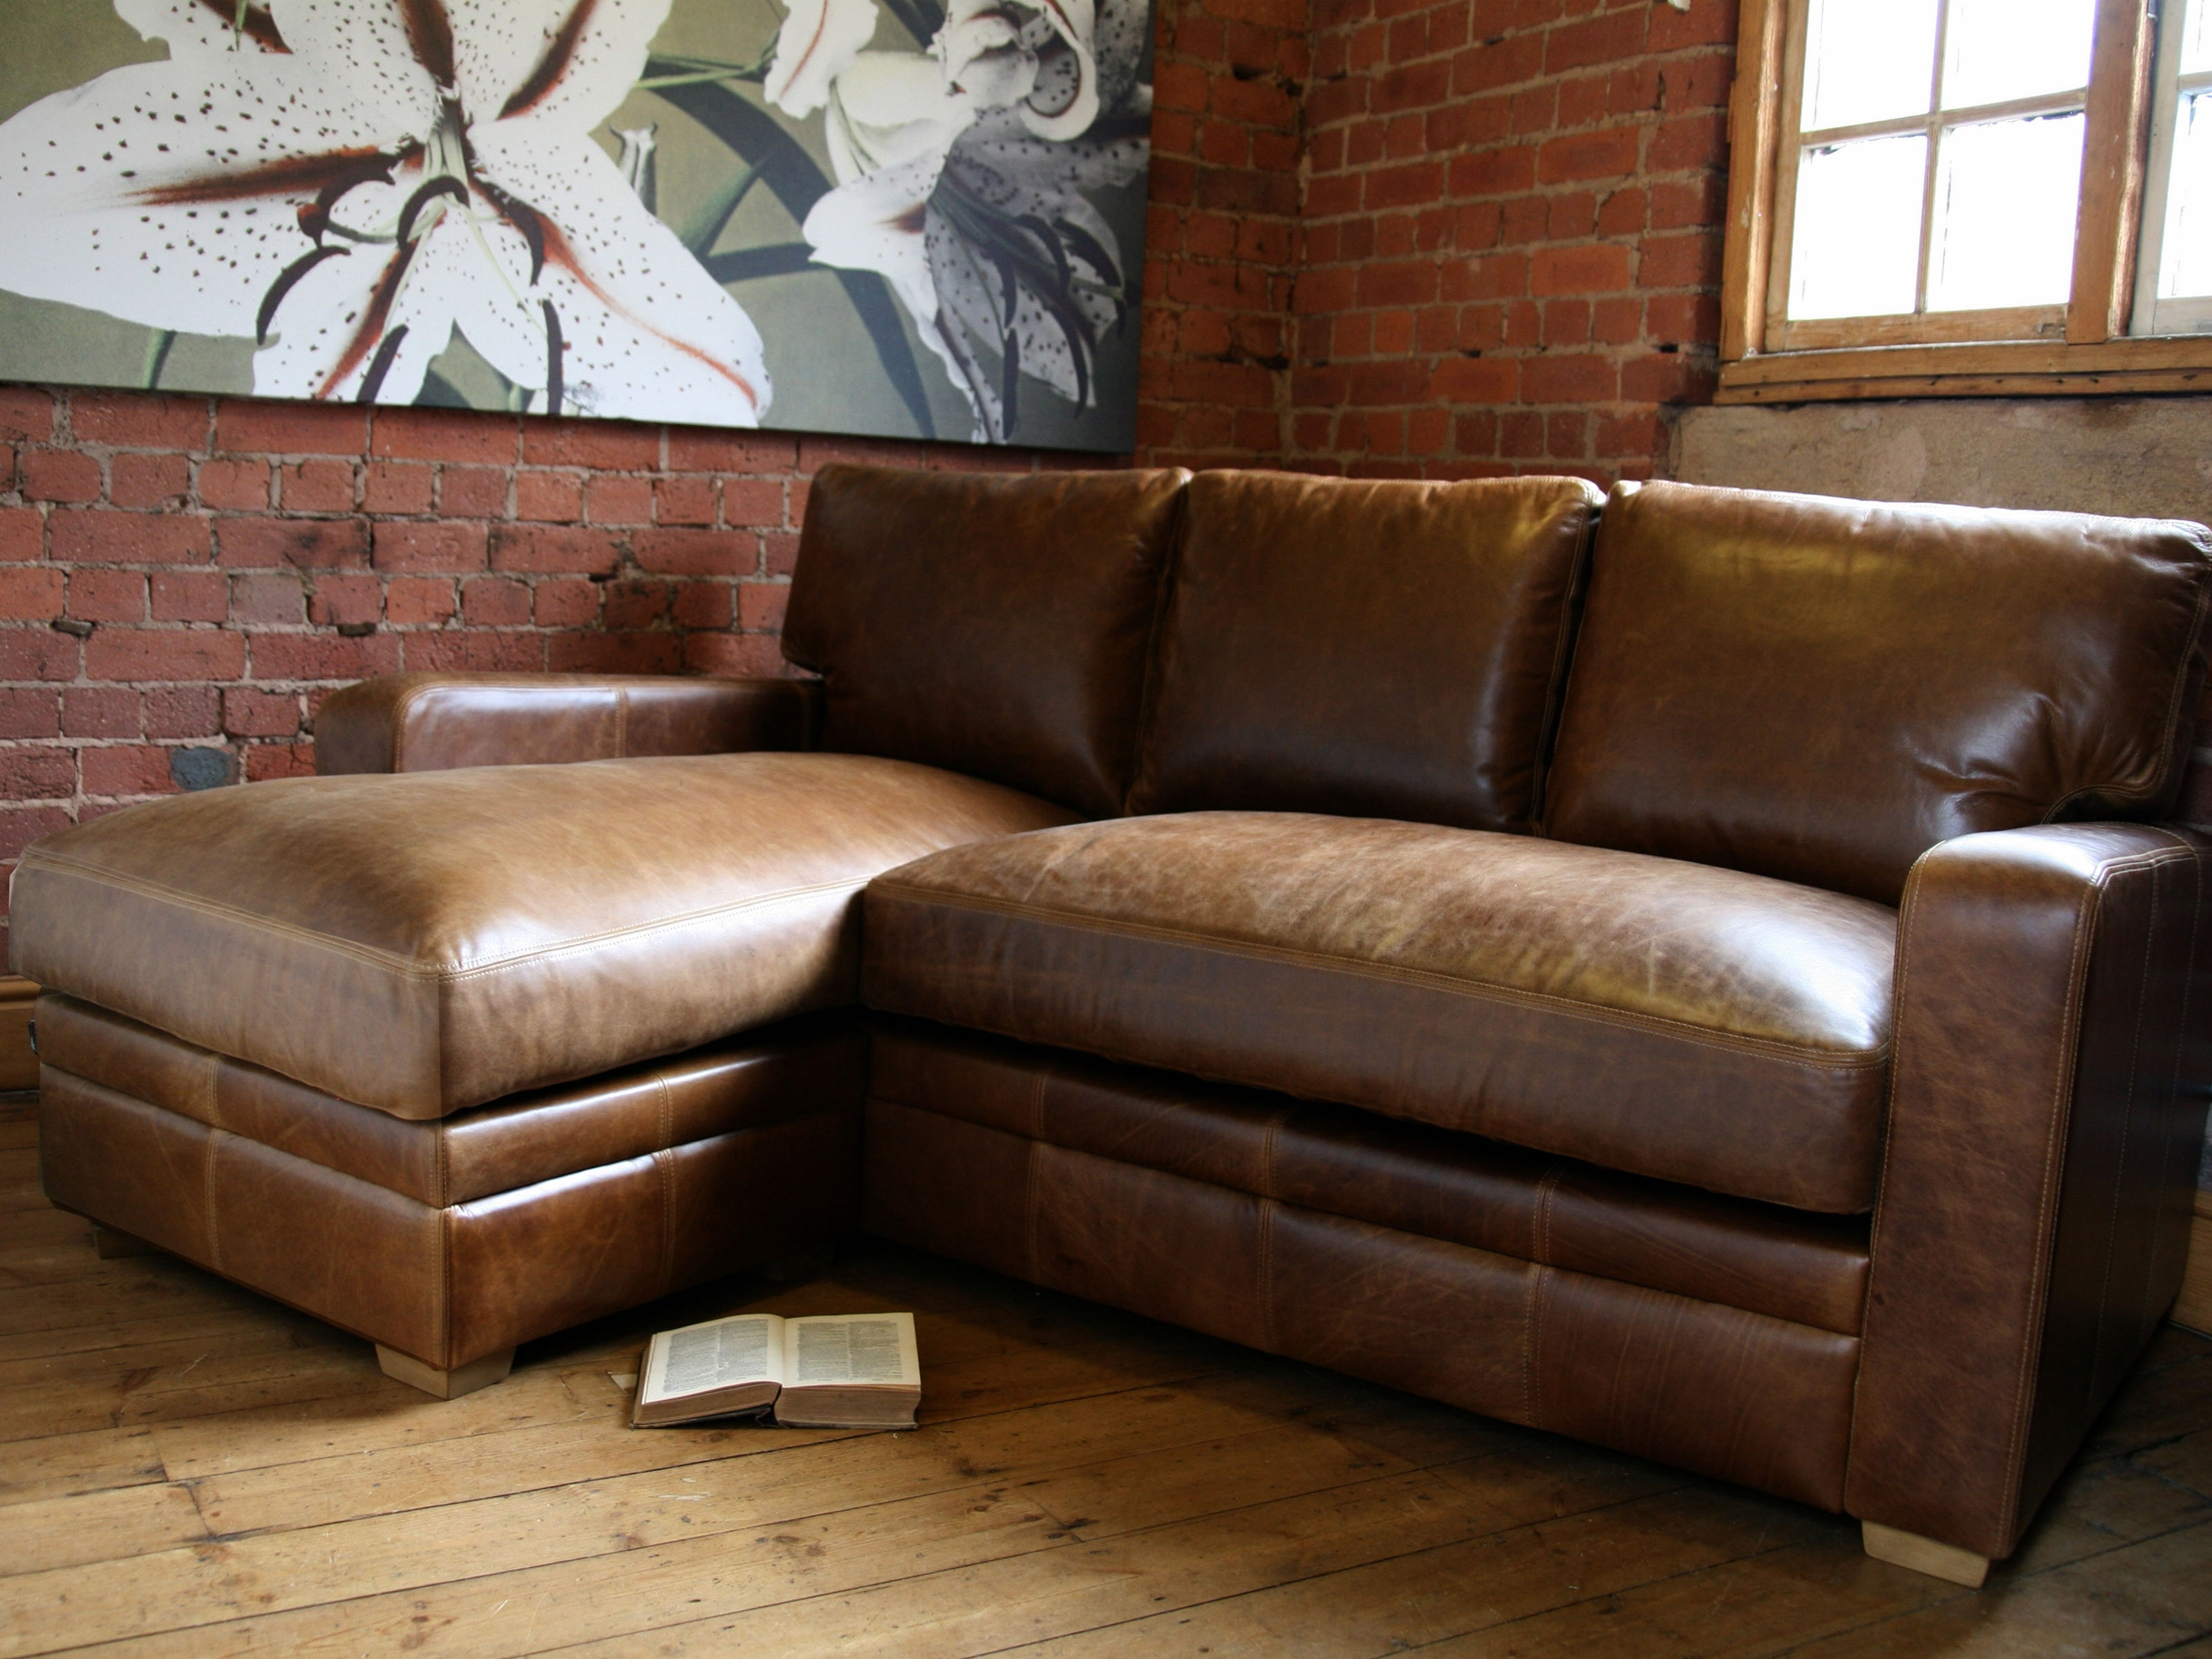 Inspirational Leather Sofa Chaise 26 For Sofas And Couches Ideas Pertaining To Recent Leather Sofas With Chaise Lounge (View 7 of 15)